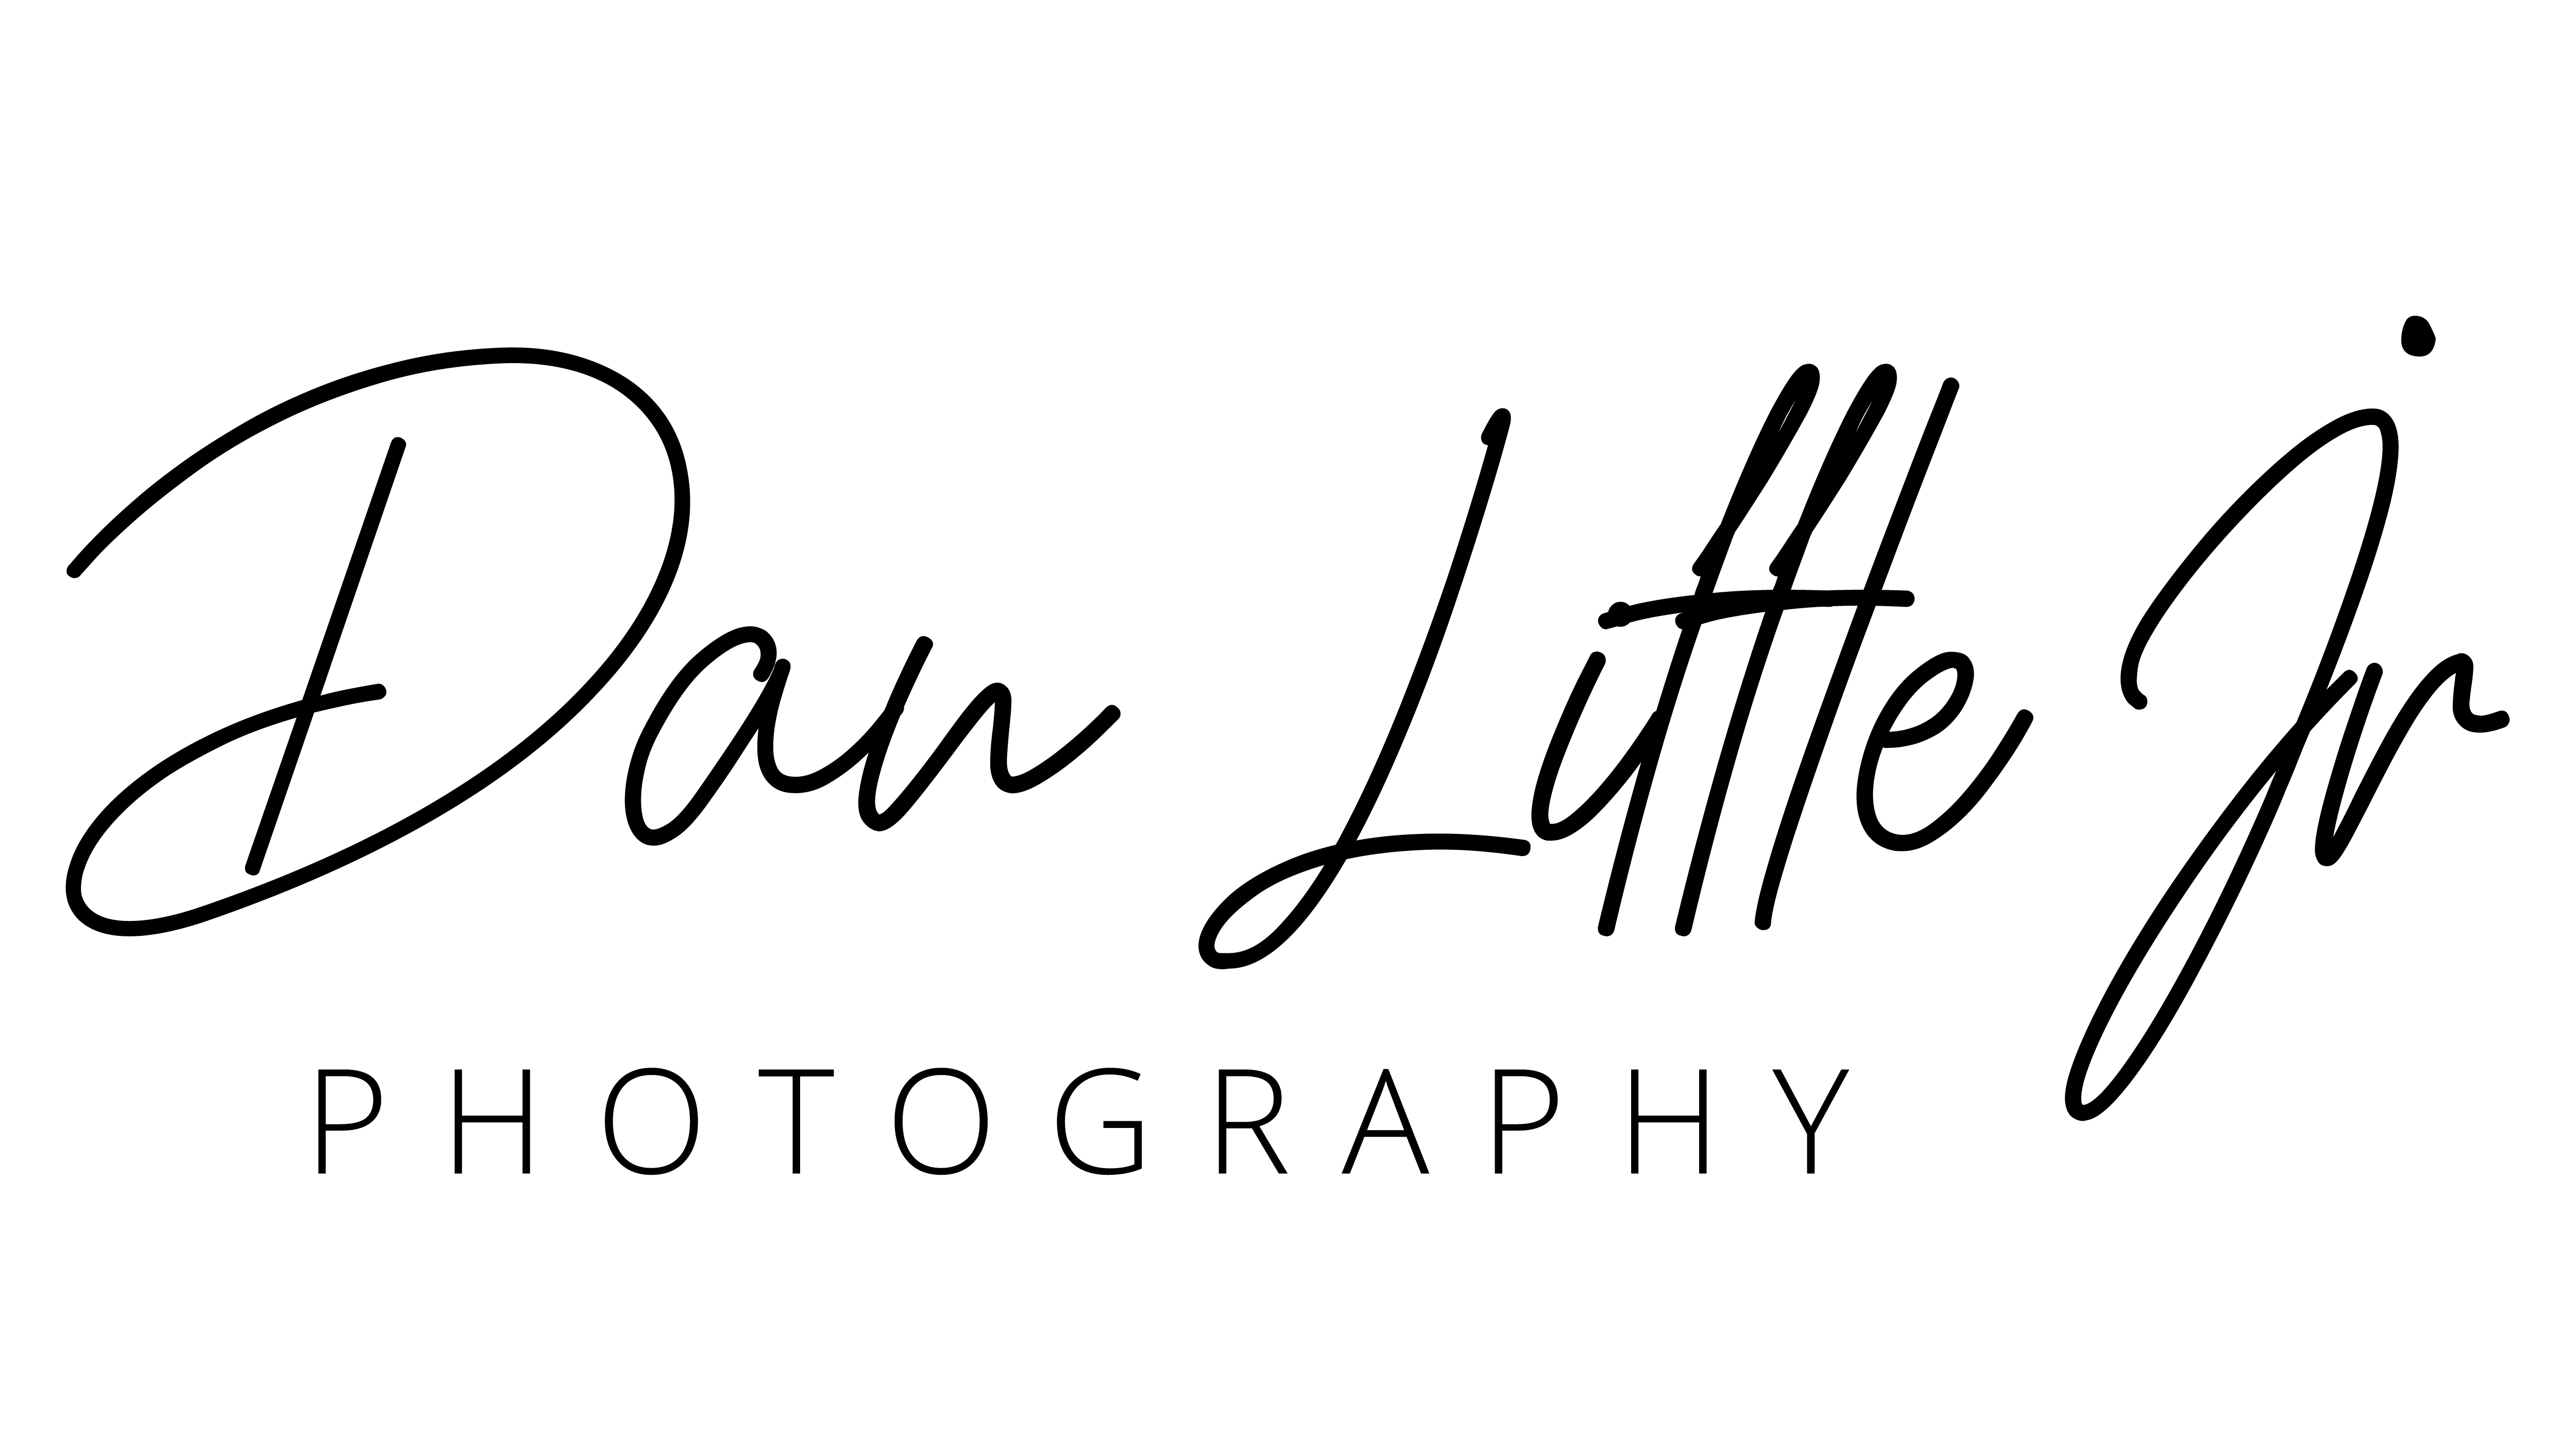 Dan Little Jr